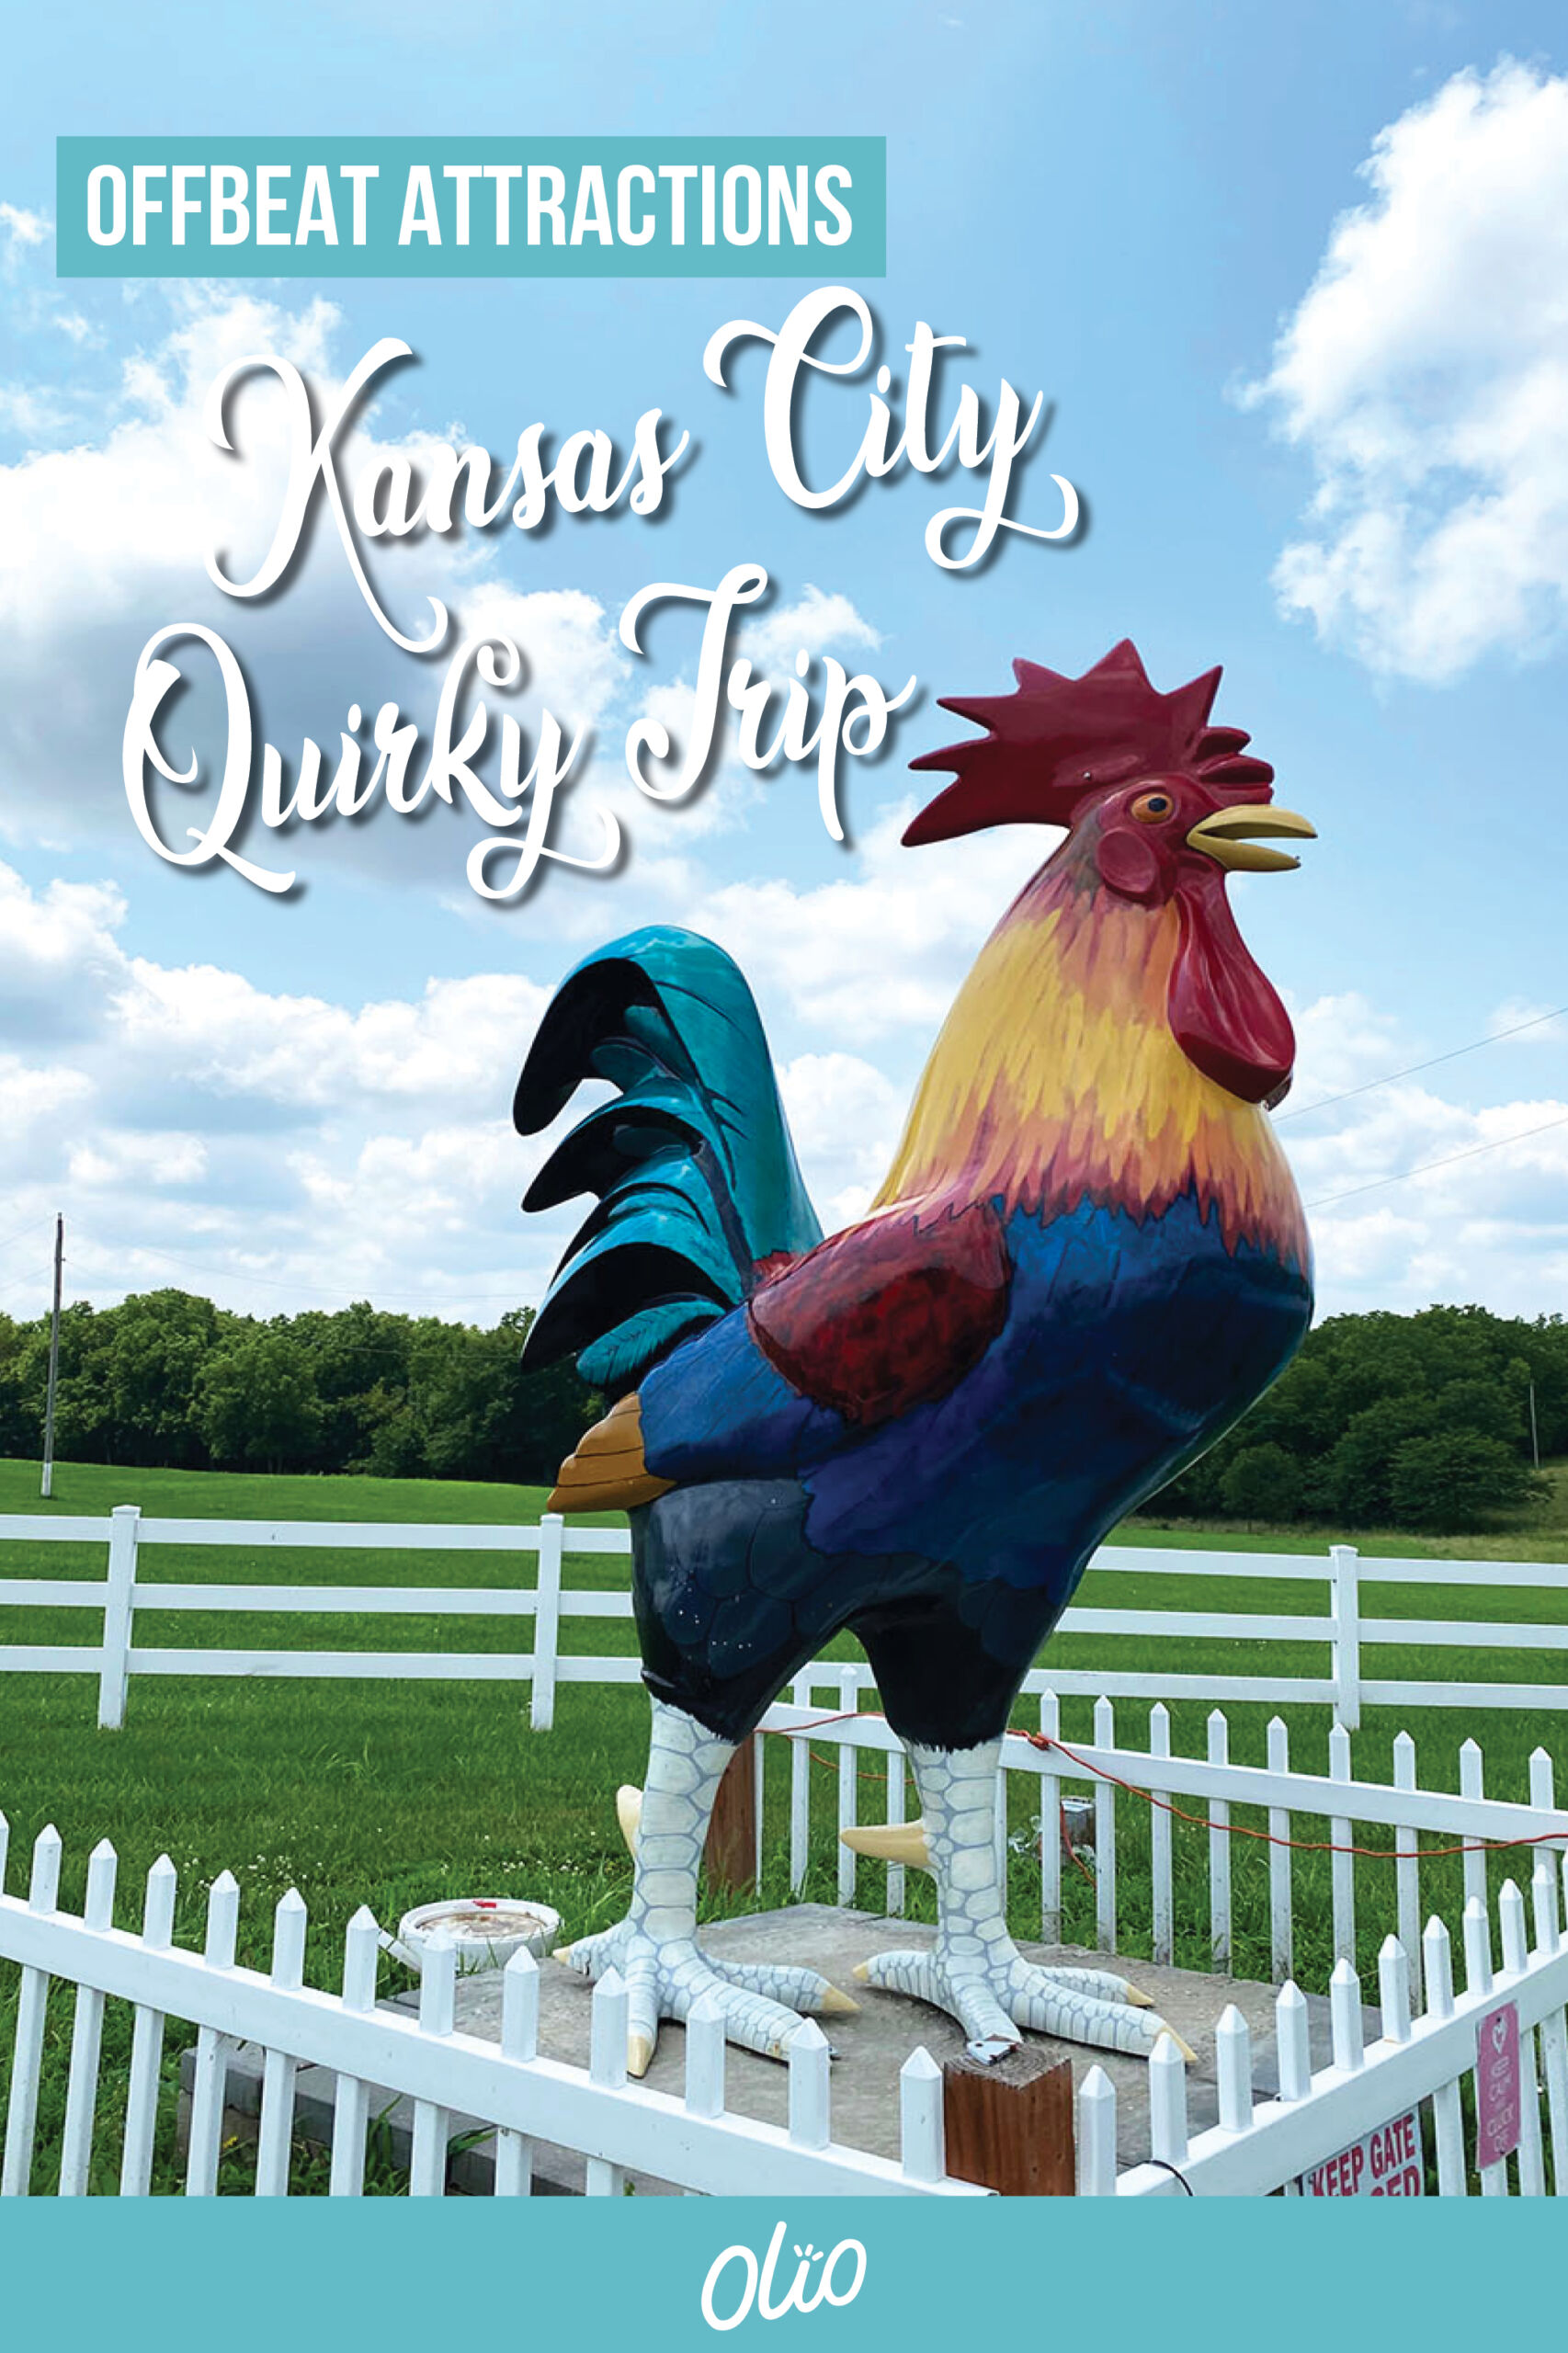 Looking for an offbeat adventure? Head to the greater Kansas City area to experience KC Destinations' Quirky Tour! Enjoy unique eateries, roadside attractions, local history and surprising small businesses on this tour of a dozen communities in the area. #Kansas #Missouri #KansasCity #Midwest #RoadsideAttractions